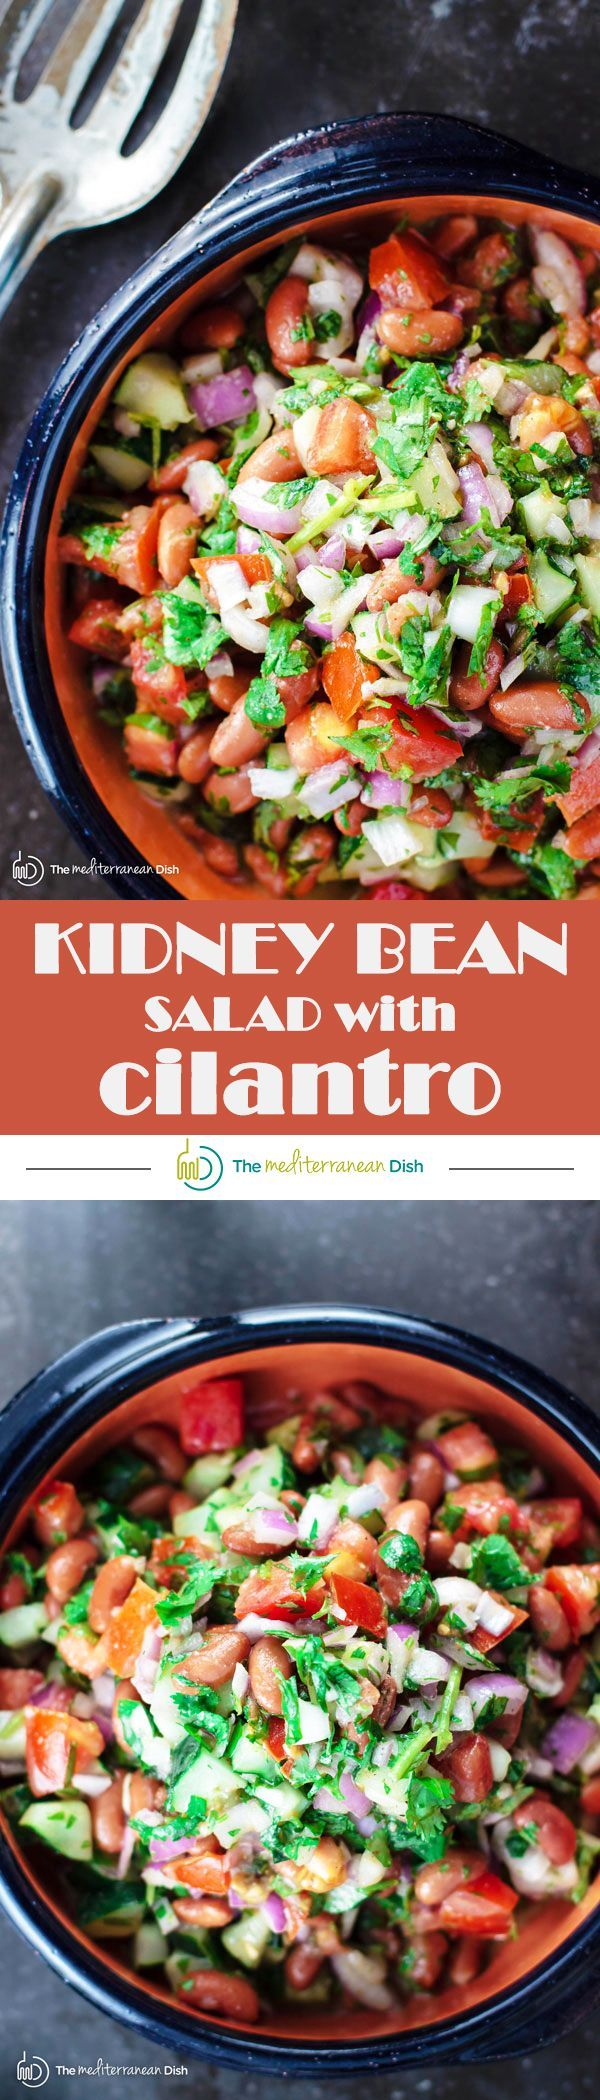 "Kidney Bean Salad with Cilantro and Dijon Vinaigrette | The Mediterranean Dish. BuzzFeed calls this salad, ""incredible!"" A simple and tasty salad of kidney beans, chopped cucumbers, tomatoes and red onions with cilantro, sumac and a zesty Dijon vinaigrette. It will be your new favorite!"